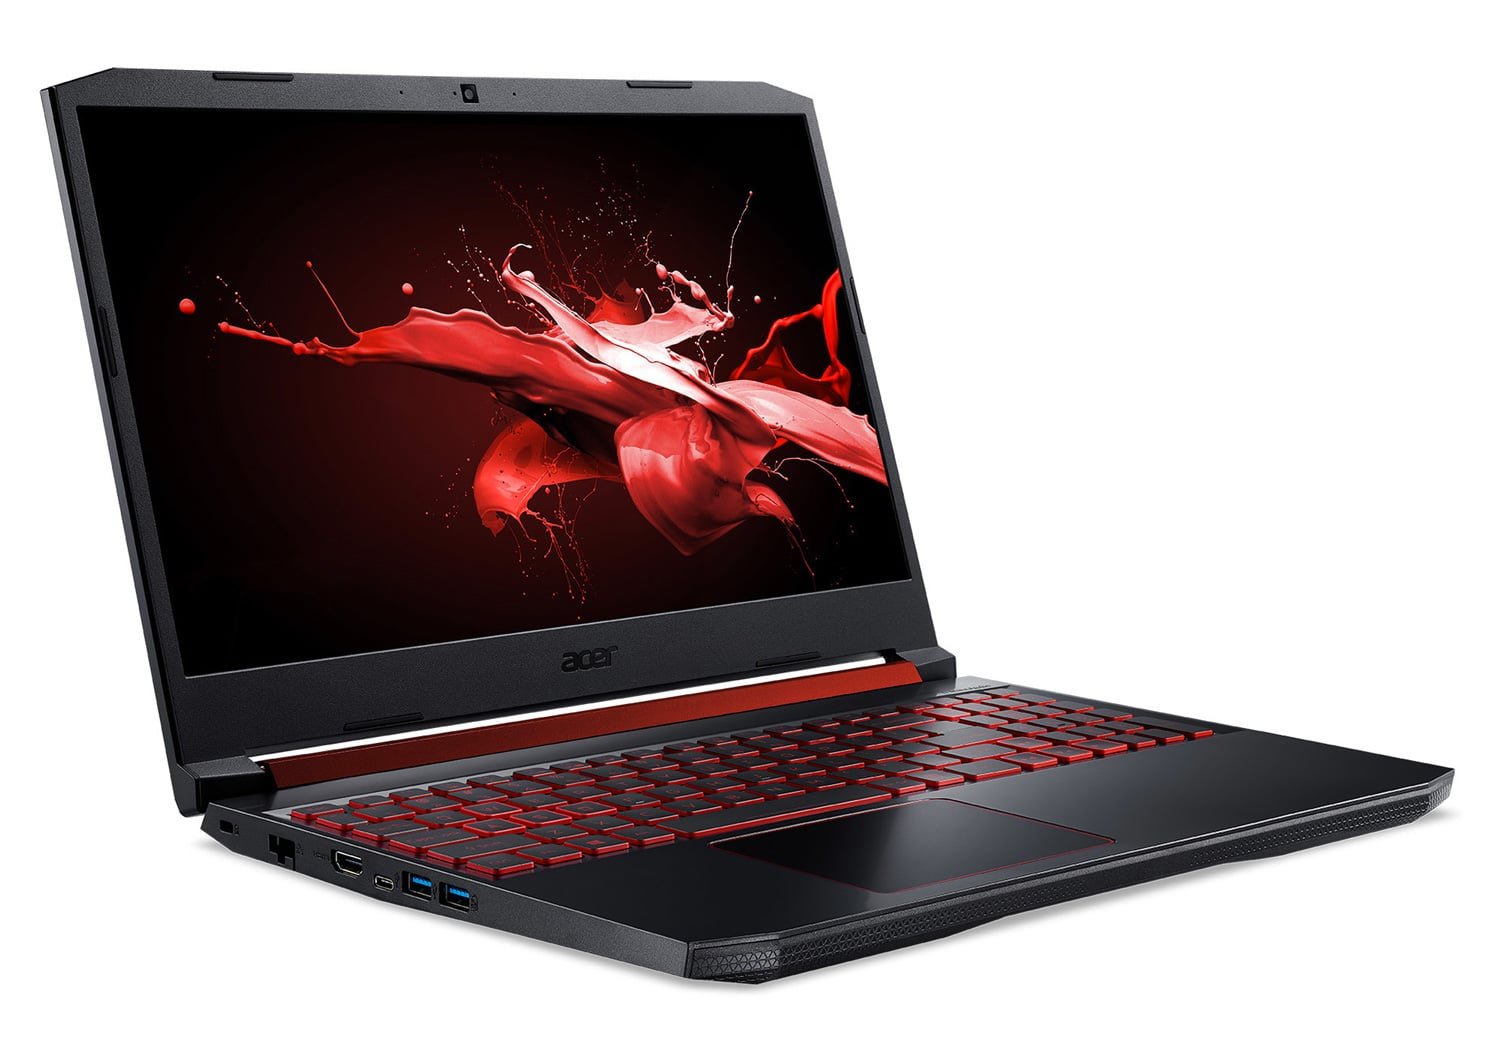 Image 1 : Le PC portable gamer Acer Nitro 5 (GeForce GTX 1660 Ti) à 700 €